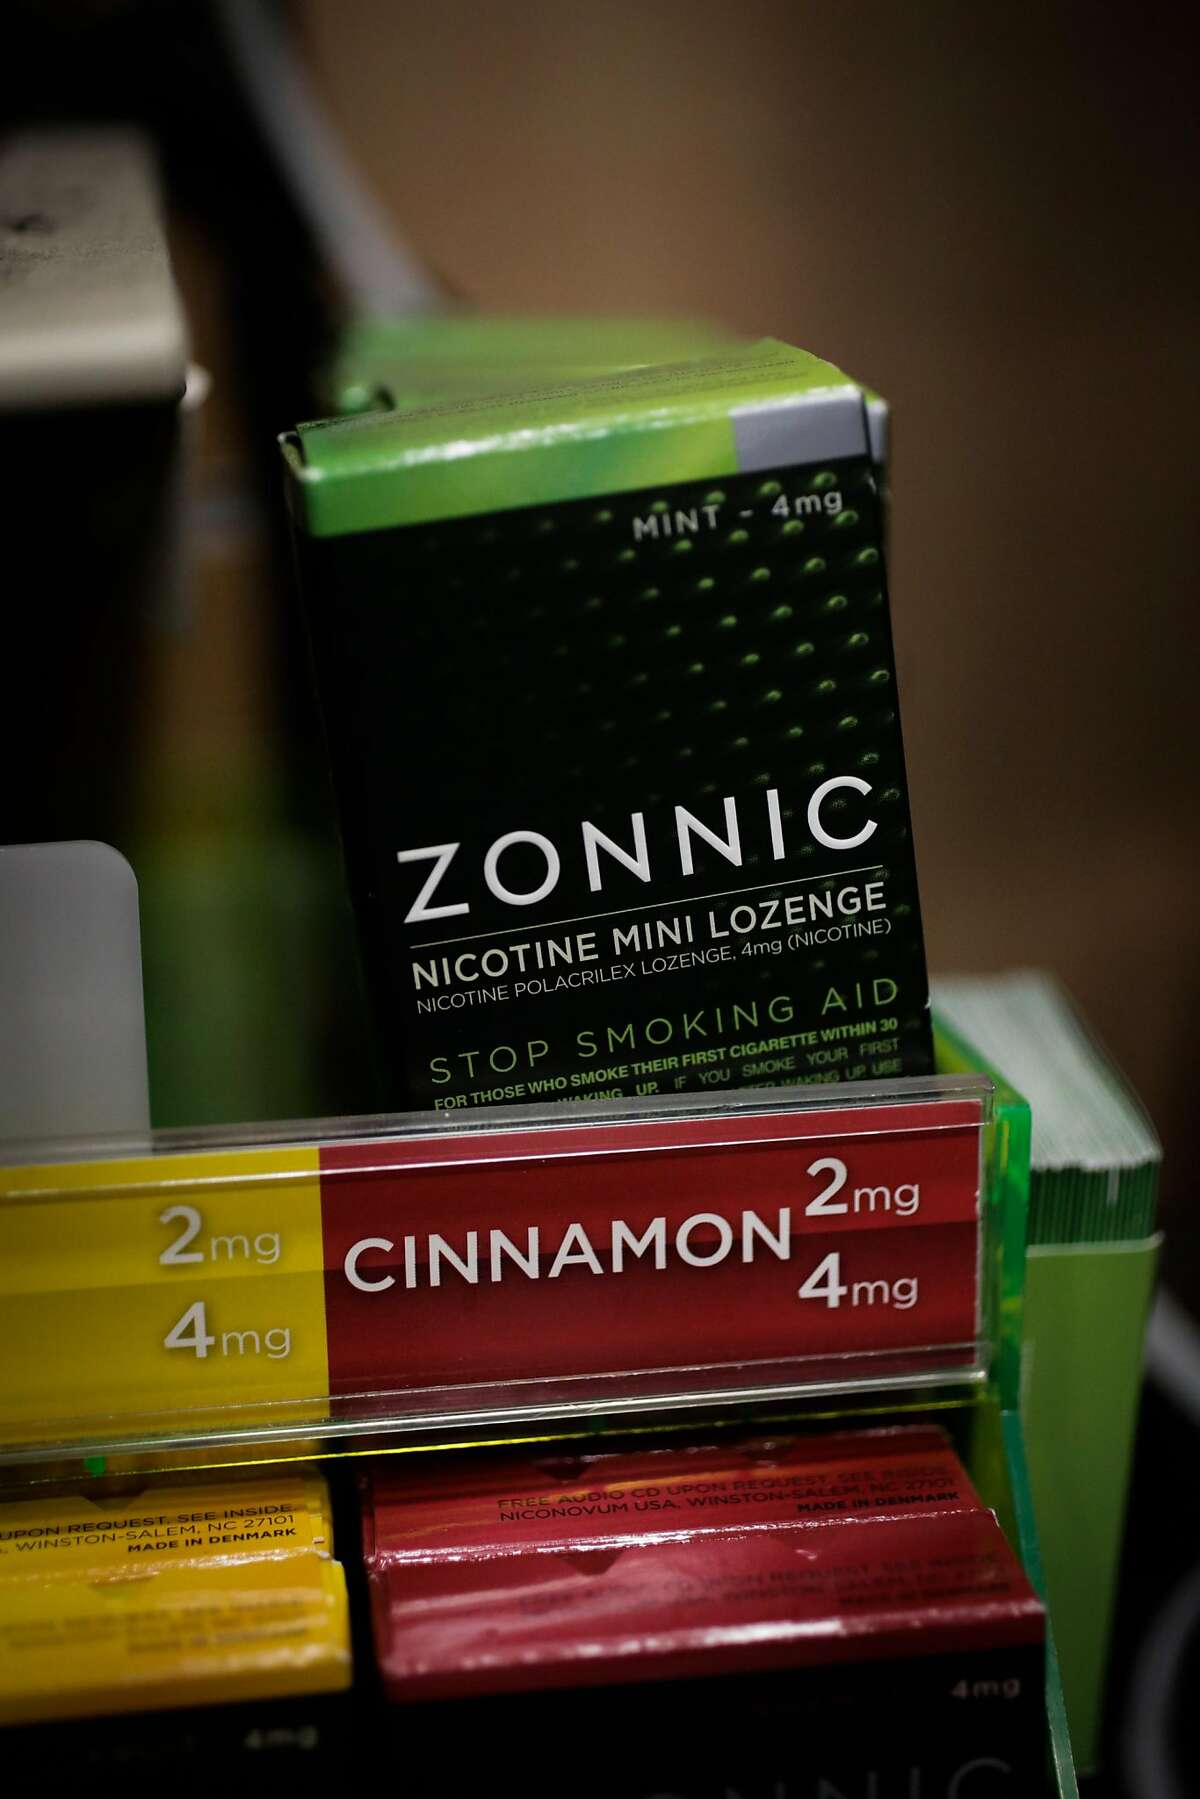 Boxes of Zonnic nicotine lozenges are seen at a 7-Eleven on Mission Street in San Francisco, Calif., on Thursday, Aug. 17, 2017.